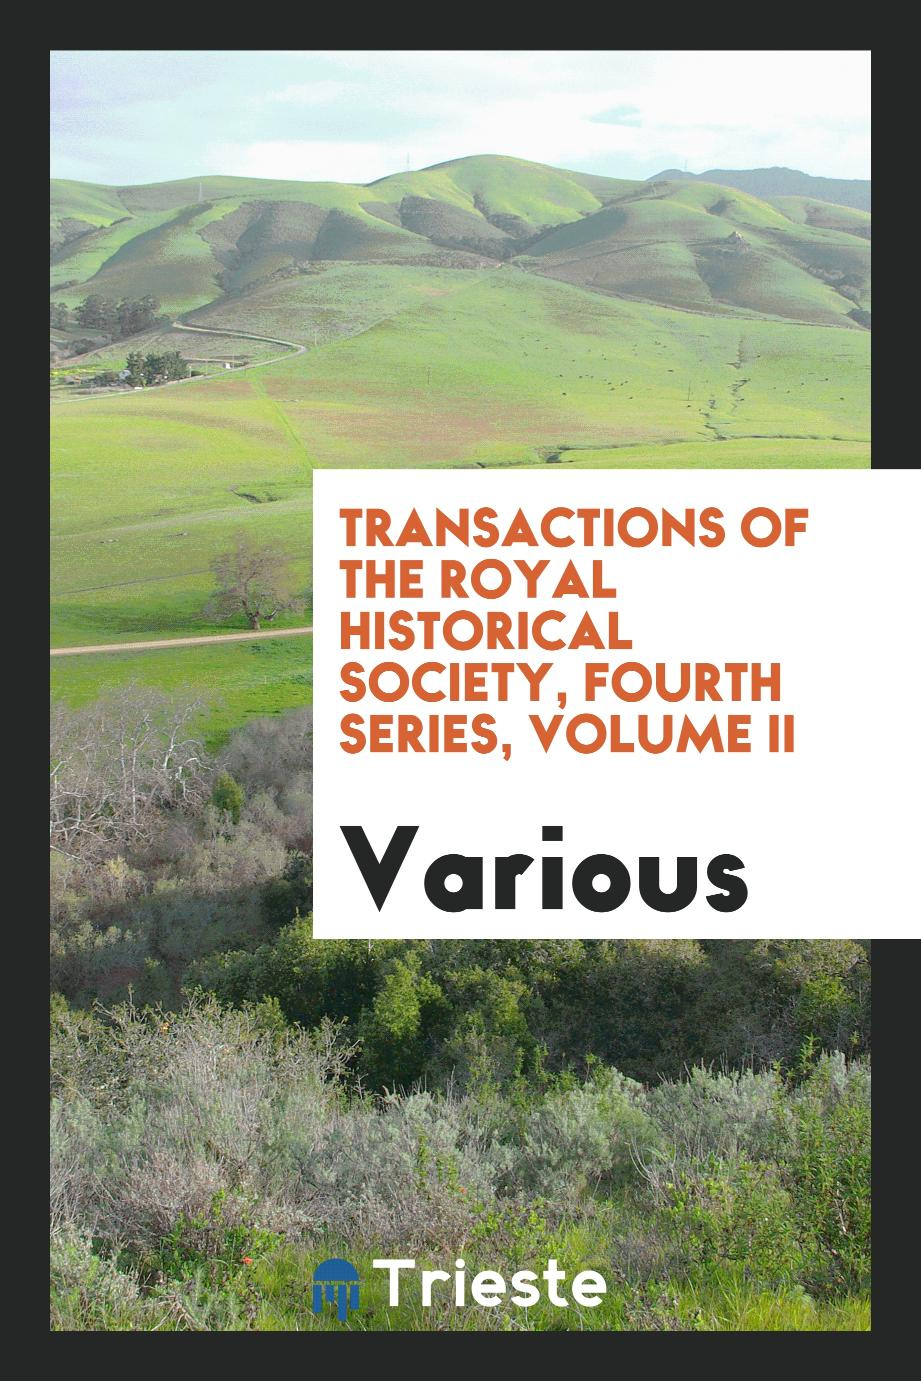 Transactions of the Royal Historical Society, Fourth Series, Volume II